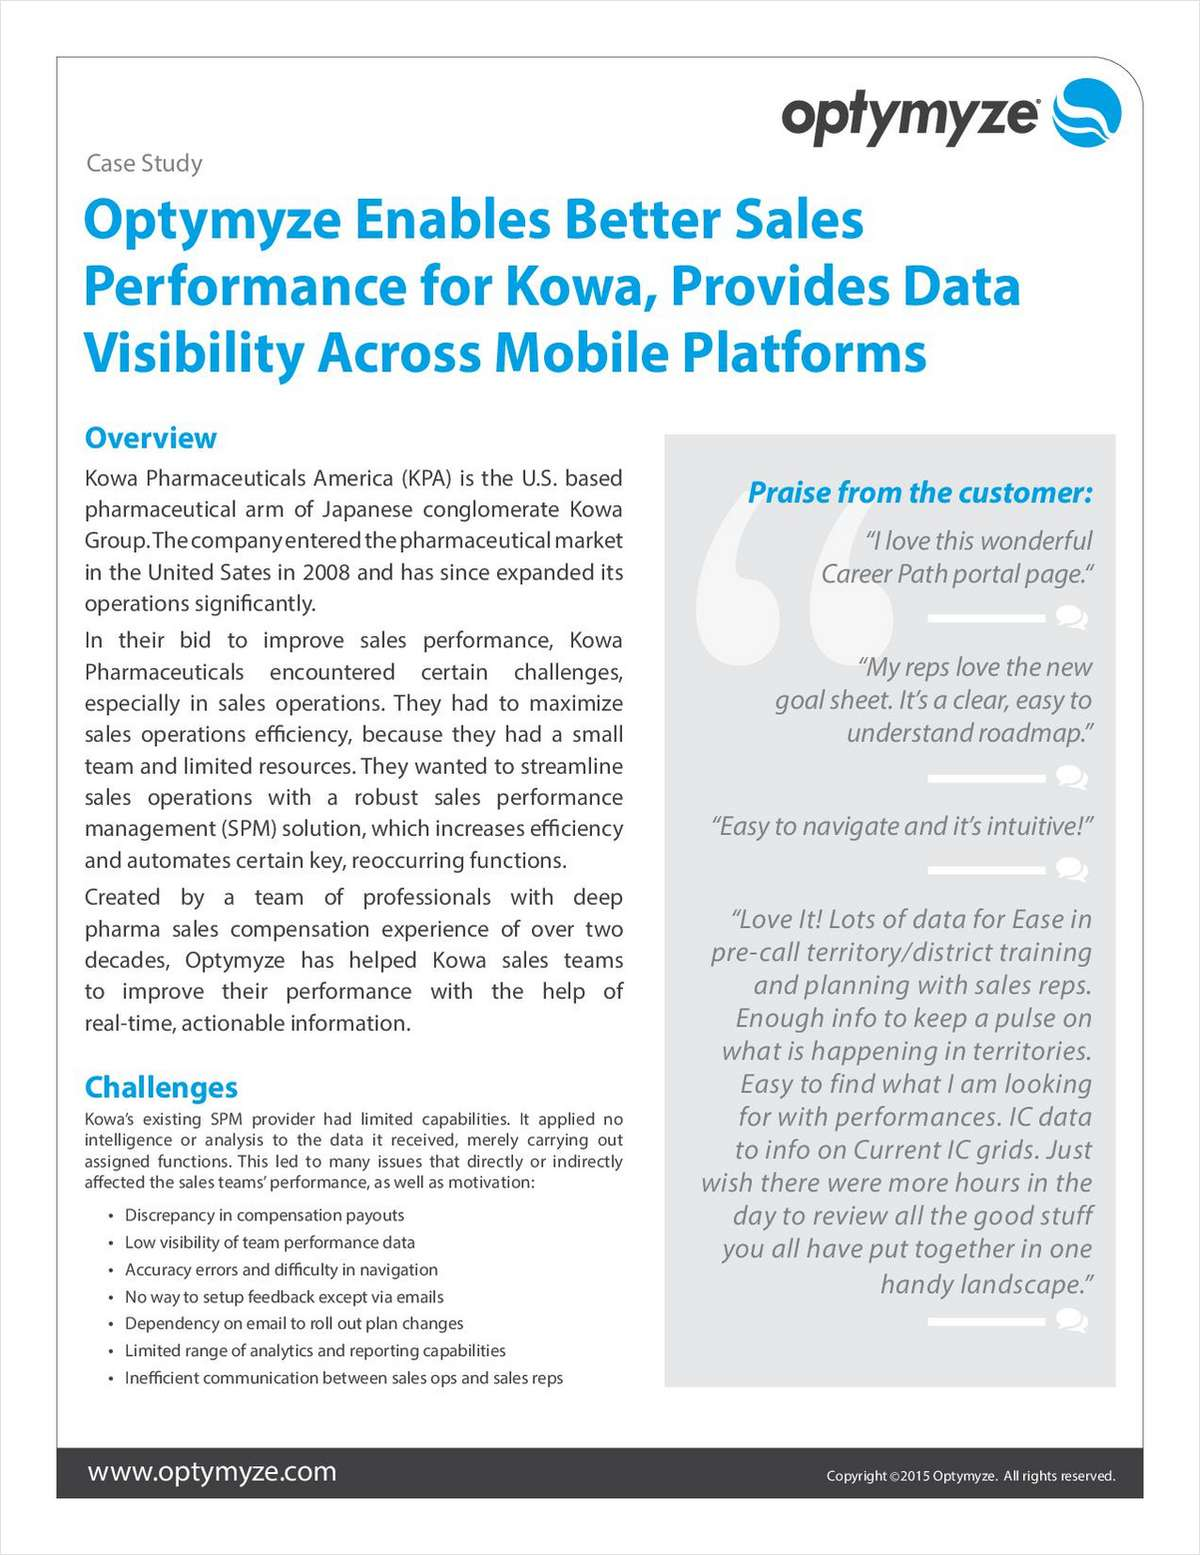 Optymyze Enables Better Sales Performance for Kowa, Provides Data Visibility Across Mobile Platforms